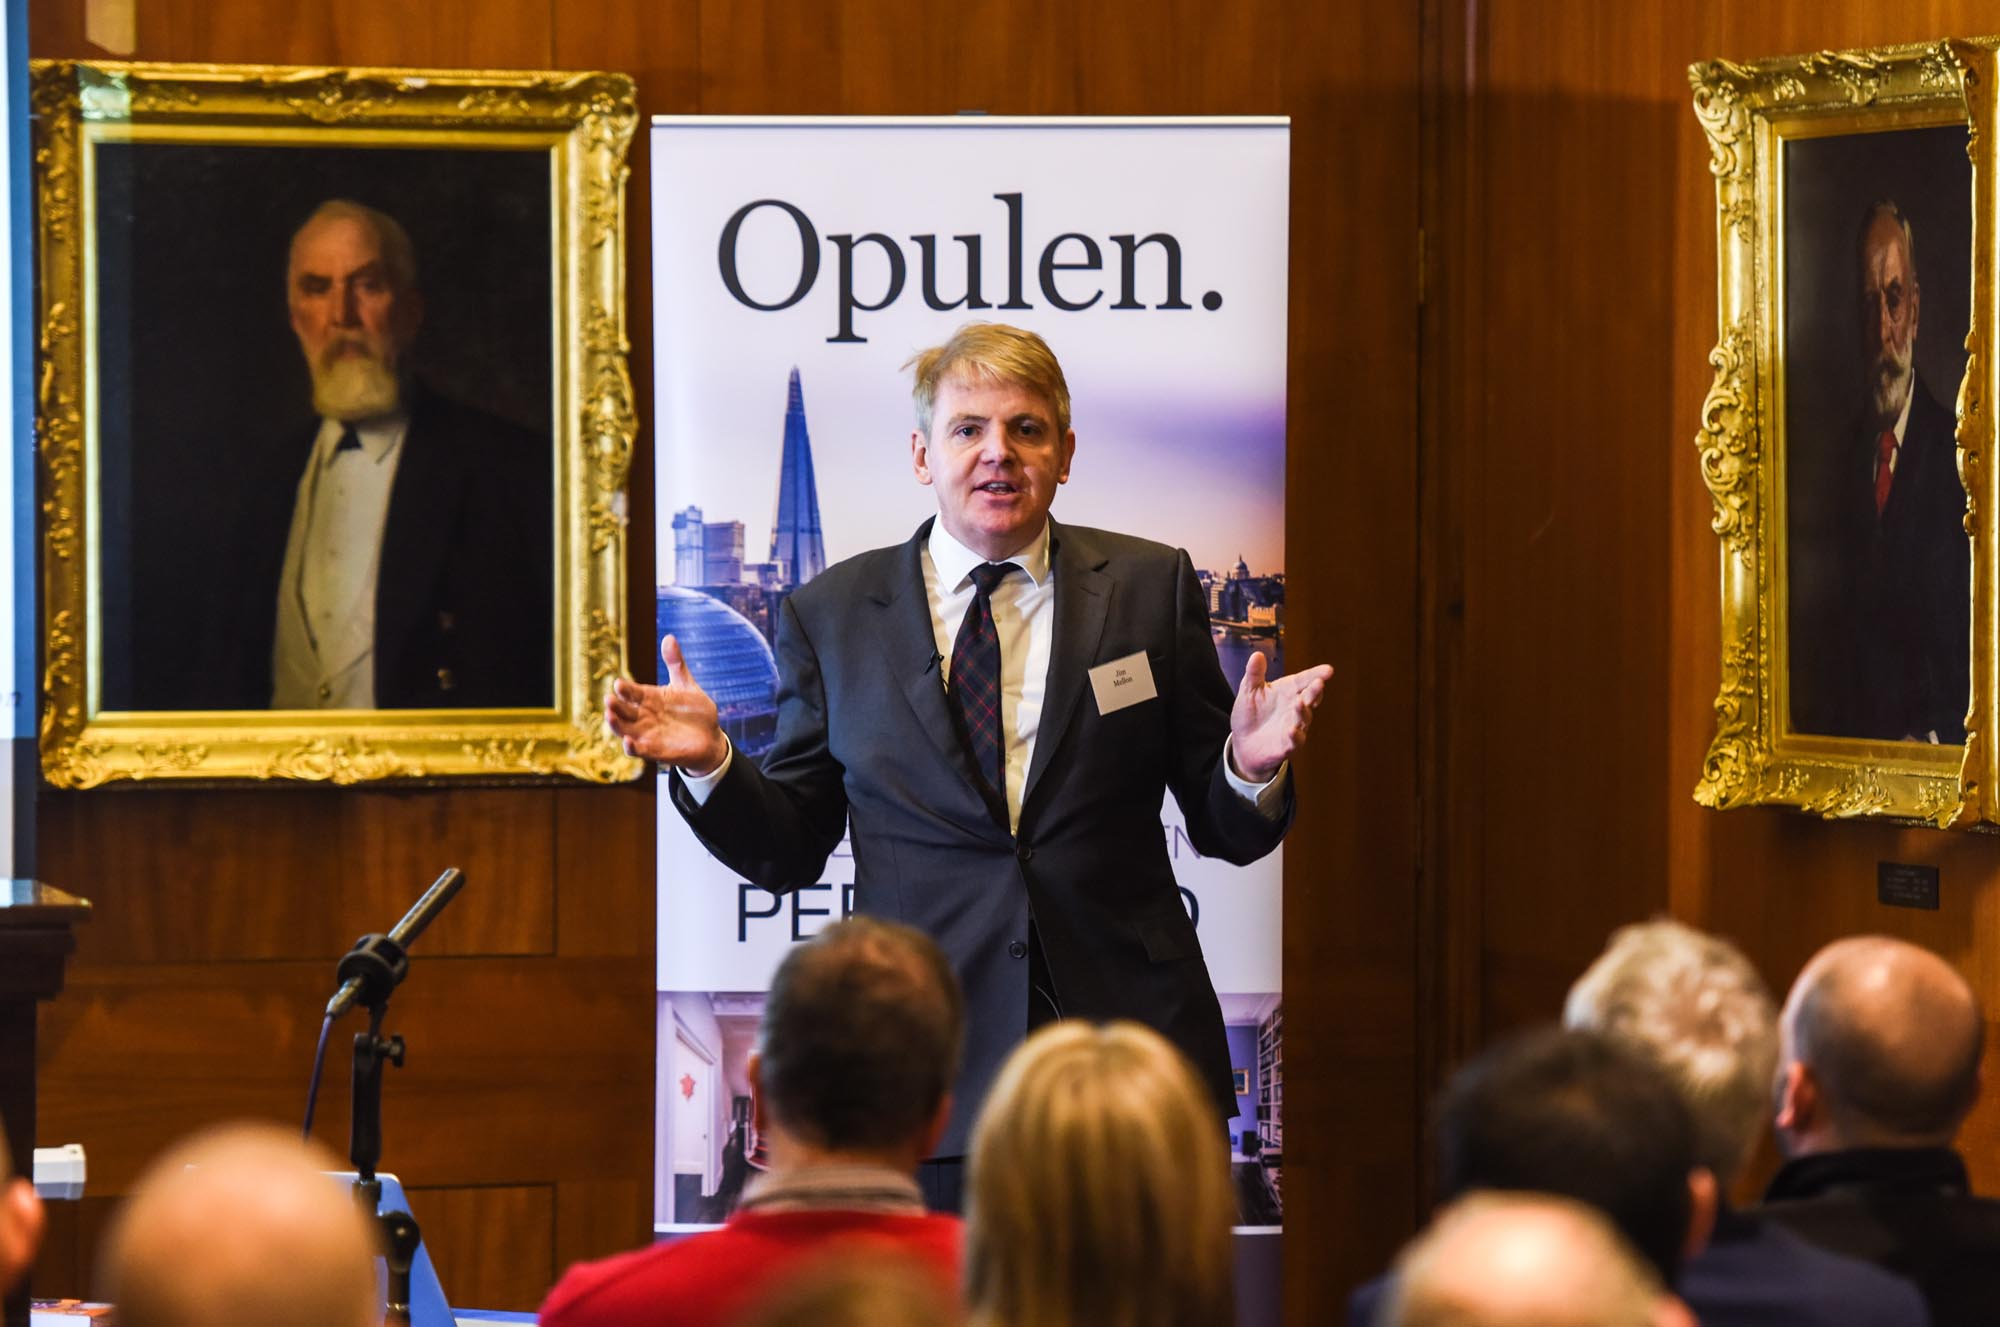 World class investor Jim Mellon sold out but we filmed it - go to 'News' page